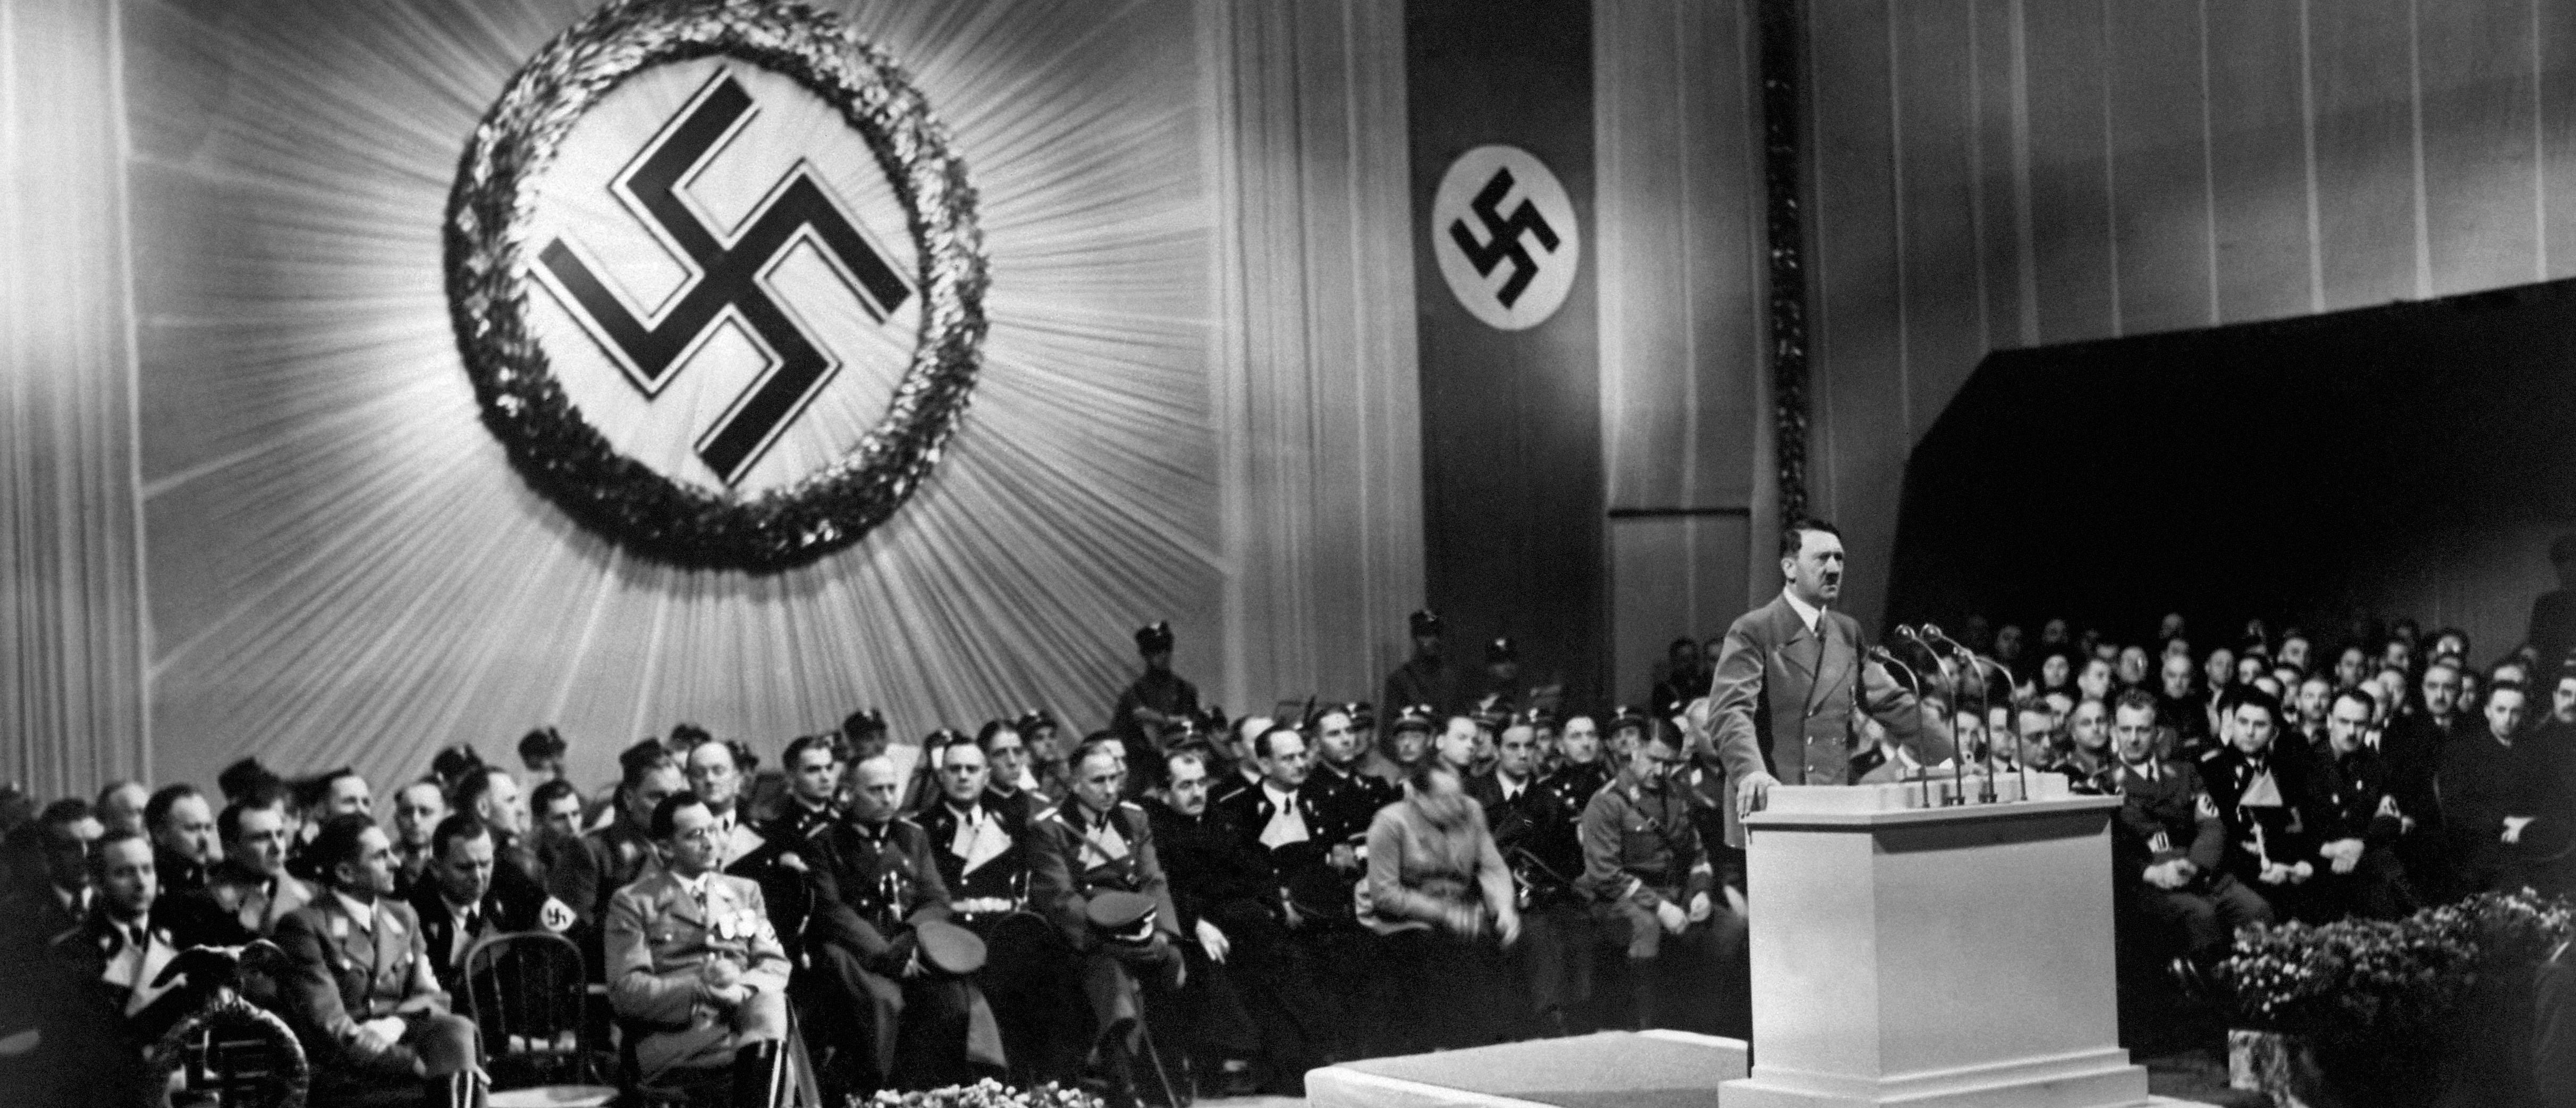 A picture dated 1939 shows German nazi Chancellor and dictator Adolf Hitler giving a speech during a meeting with nazi high rank officials seated under a large swastika. AFP PHOTO / FRANCE PRESSE VOIR (Photo credit should read -/AFP/Getty Images)